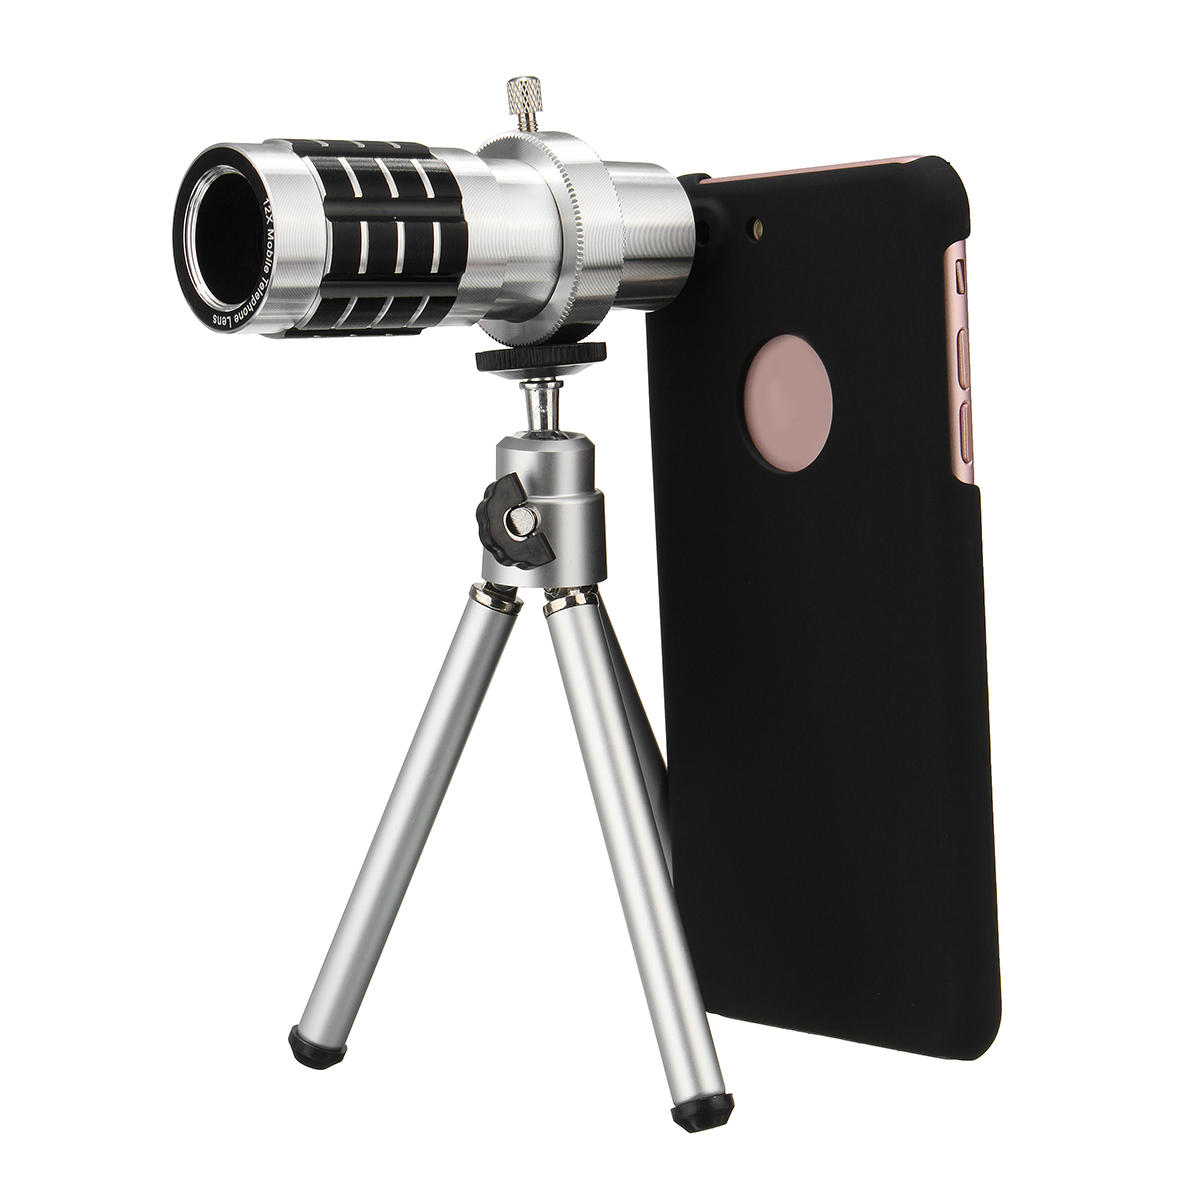 78a0f5c6bfb762 ... Phone Camera Lens / Tripod Kit. Share To. Share for the first three  times everyday and get 5 Points per time. 600x600; 600x600; 600x600;  600x600 ...